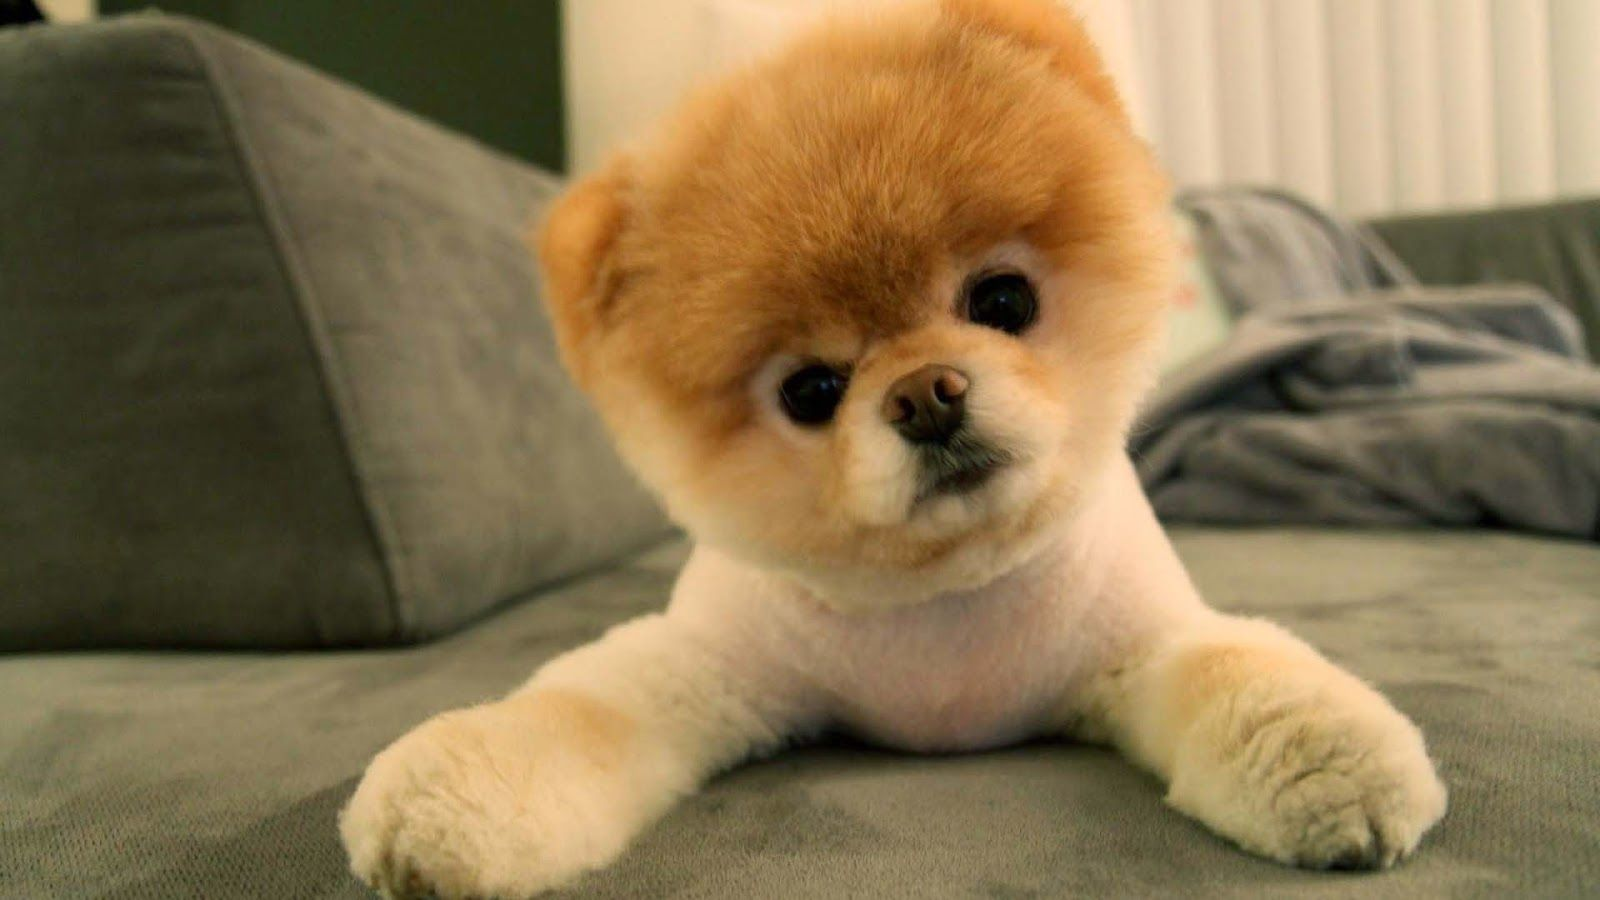 Cute Pomeranian Puppies Wallpaper Image Funny Dog Videos Boo